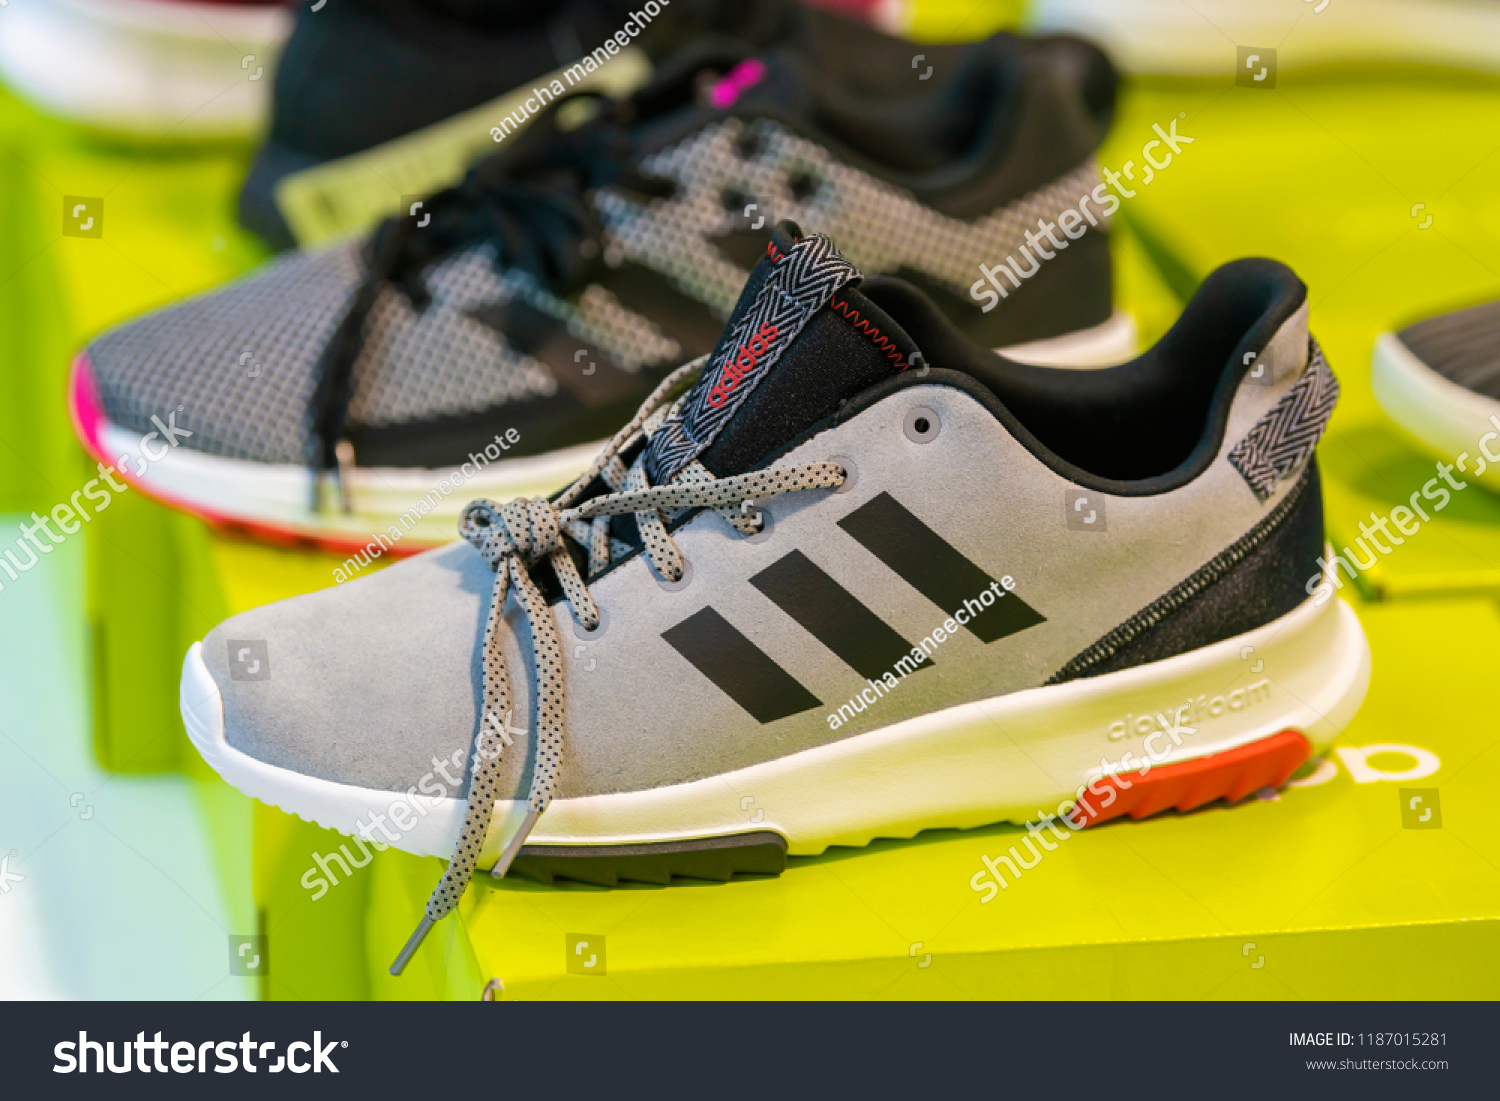 Thailand September Adidas Stock Bangkok 23 2018 Photoedit JcFlK13T